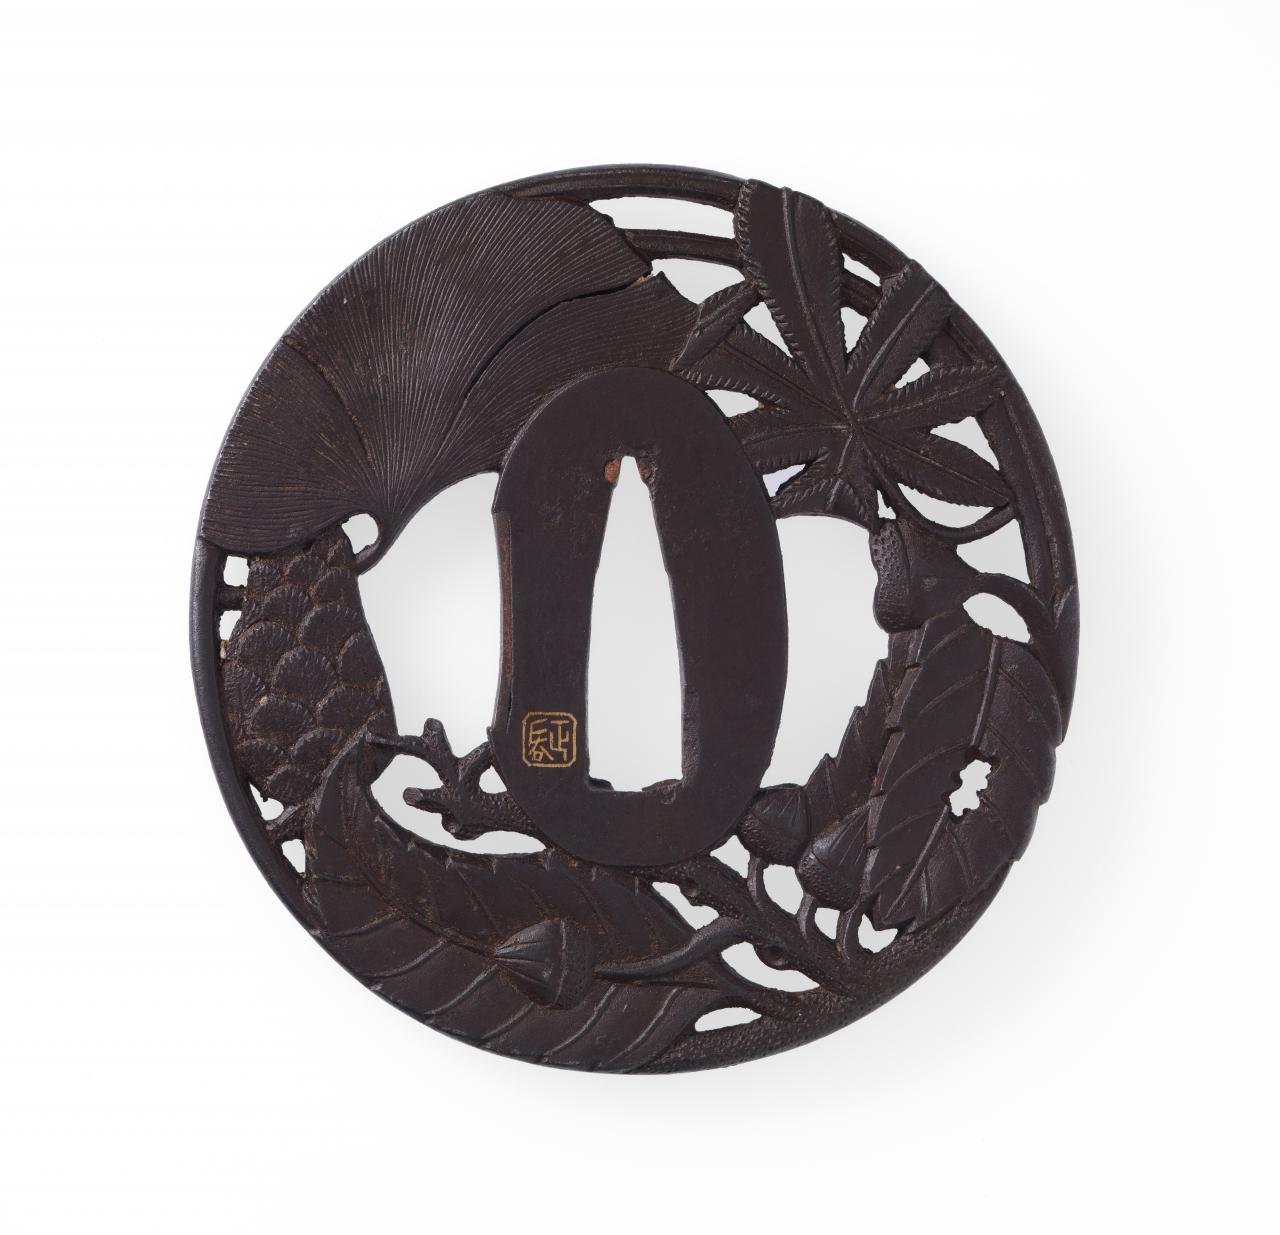 Sword guard with autumn leaves design